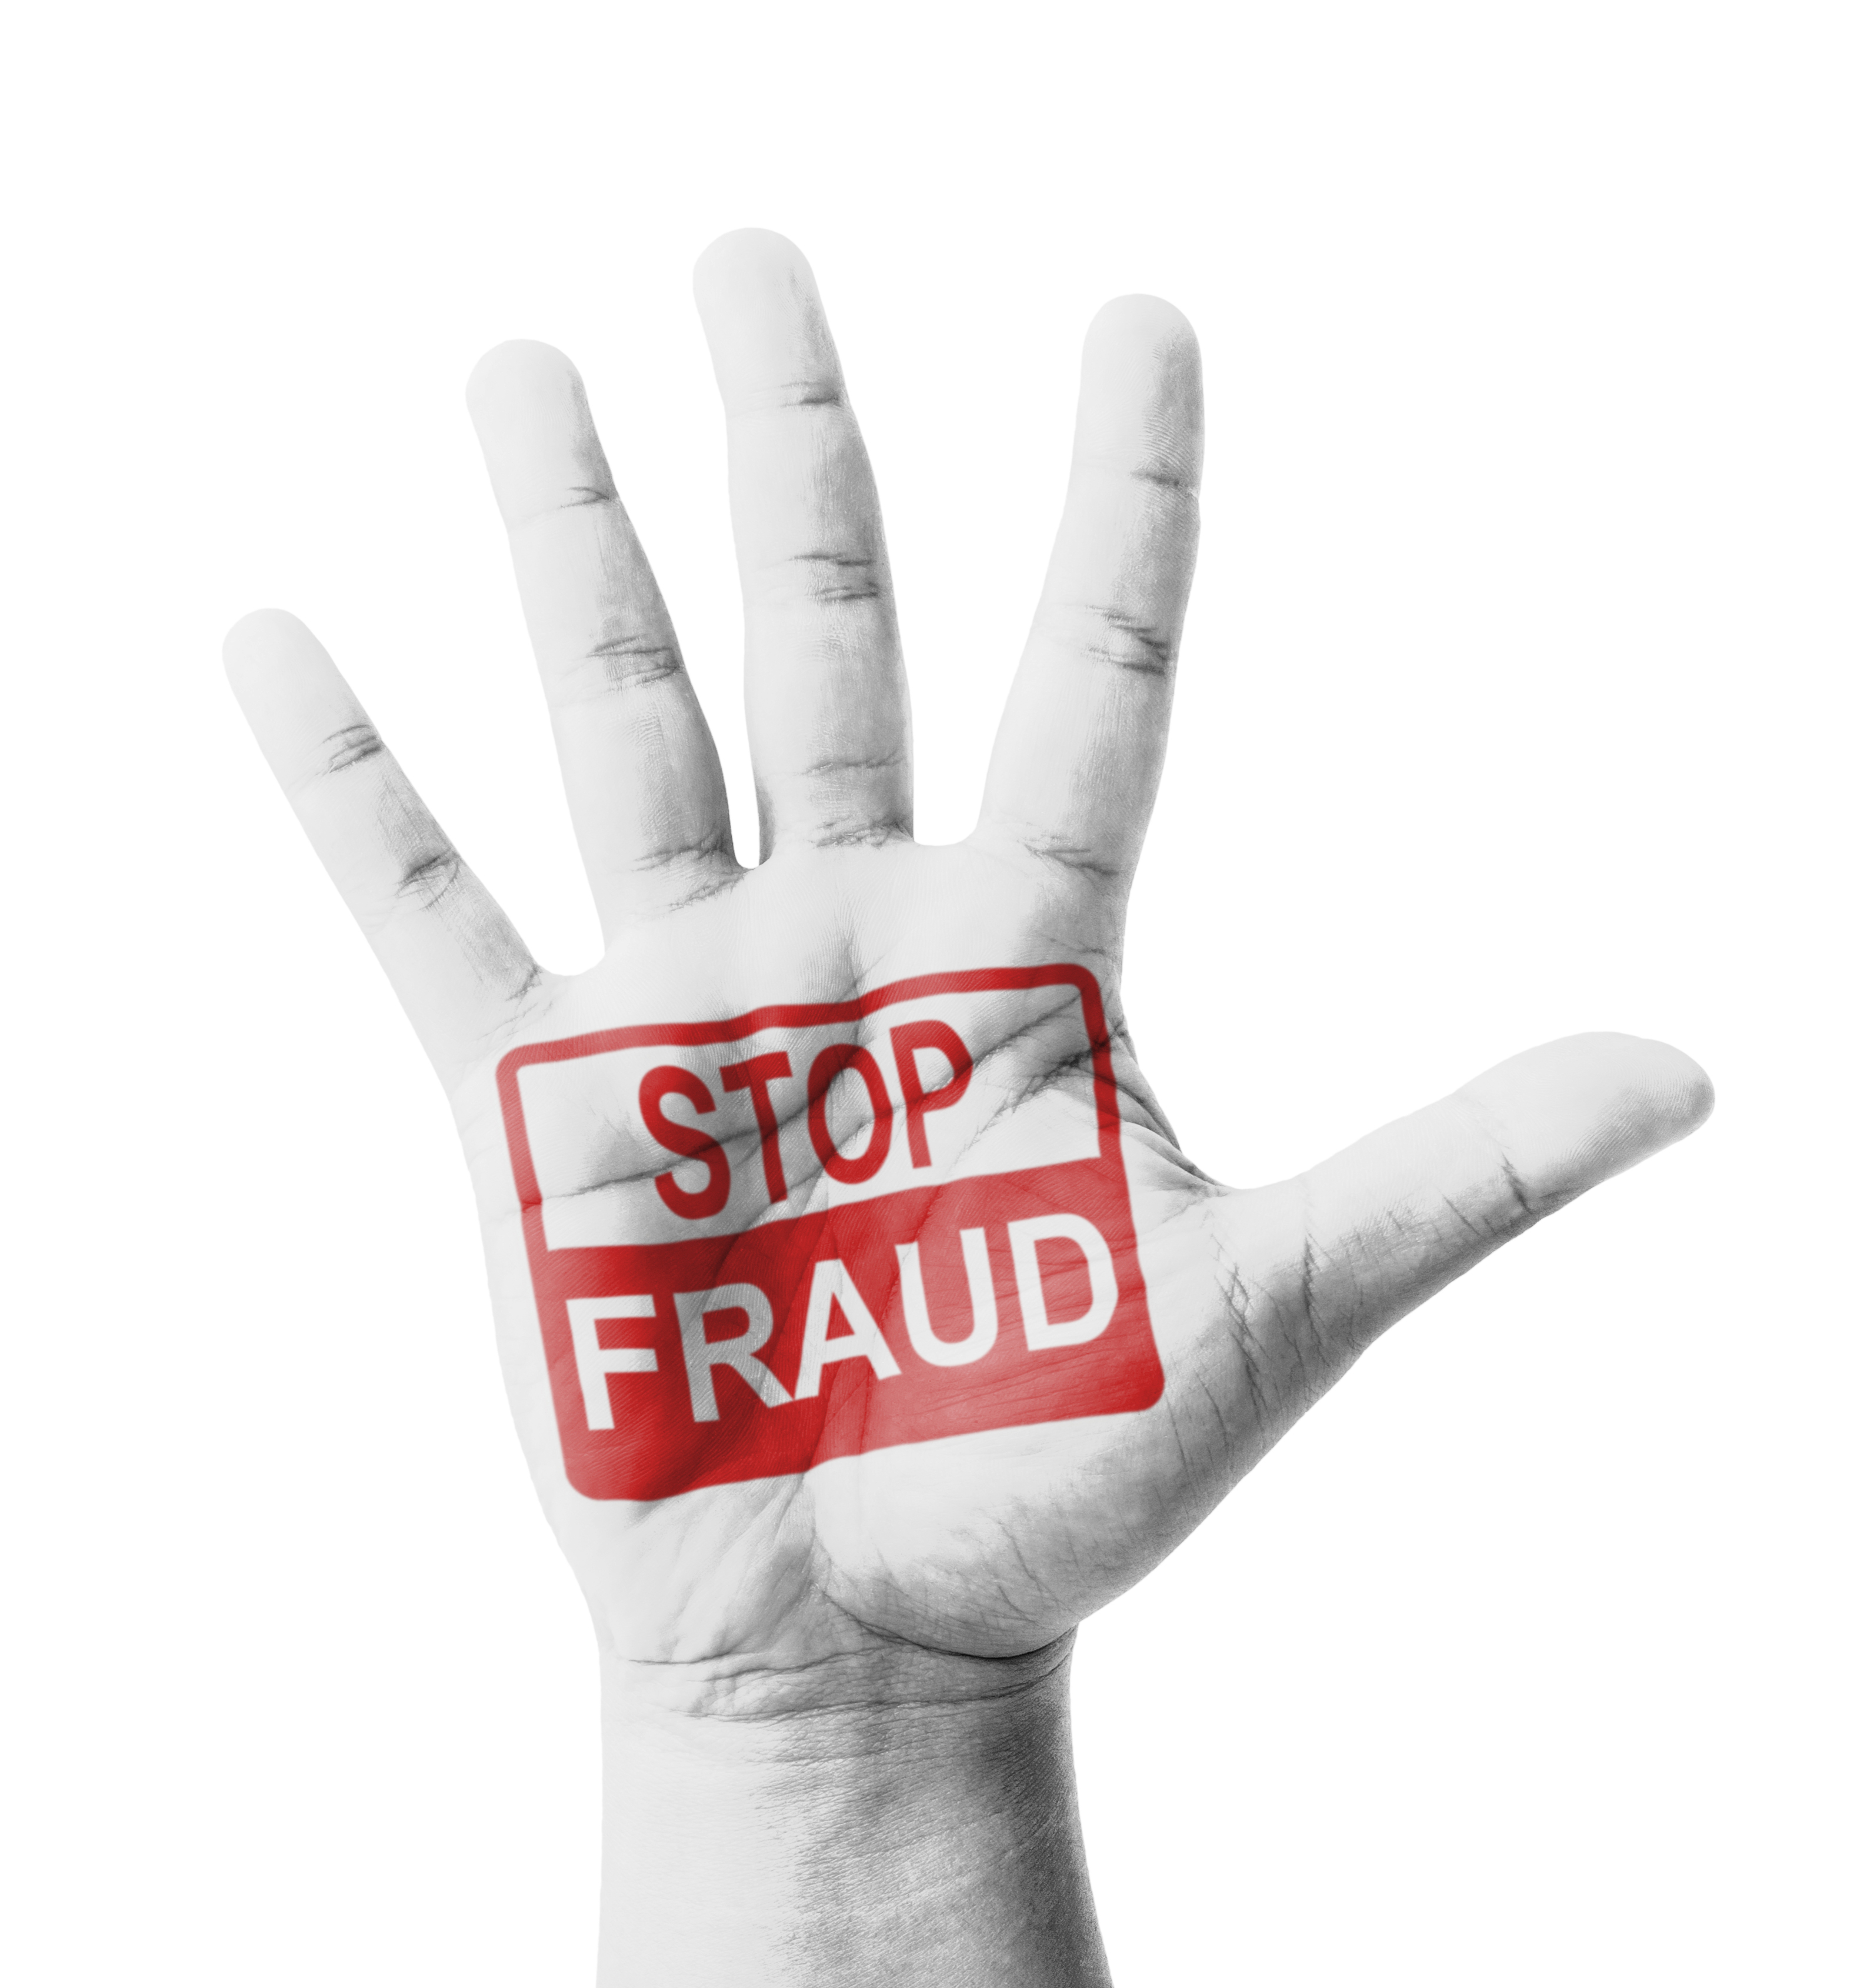 Stop Fraud Image - Large